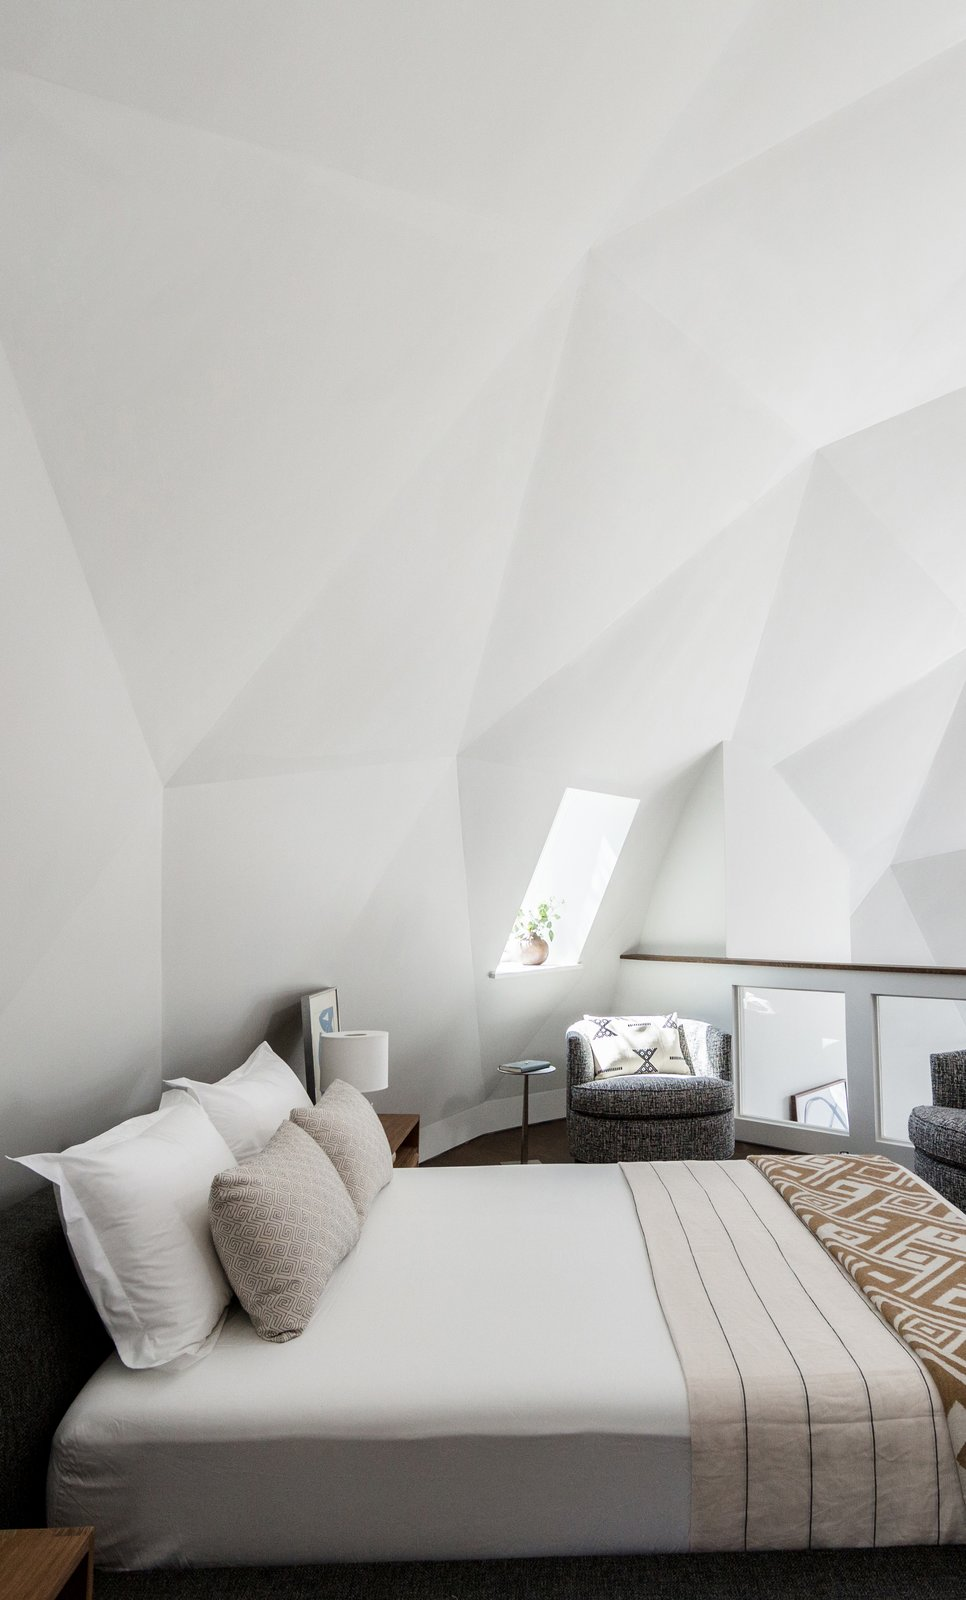 Geodesic dome cabin bedroom by Jess Cooney